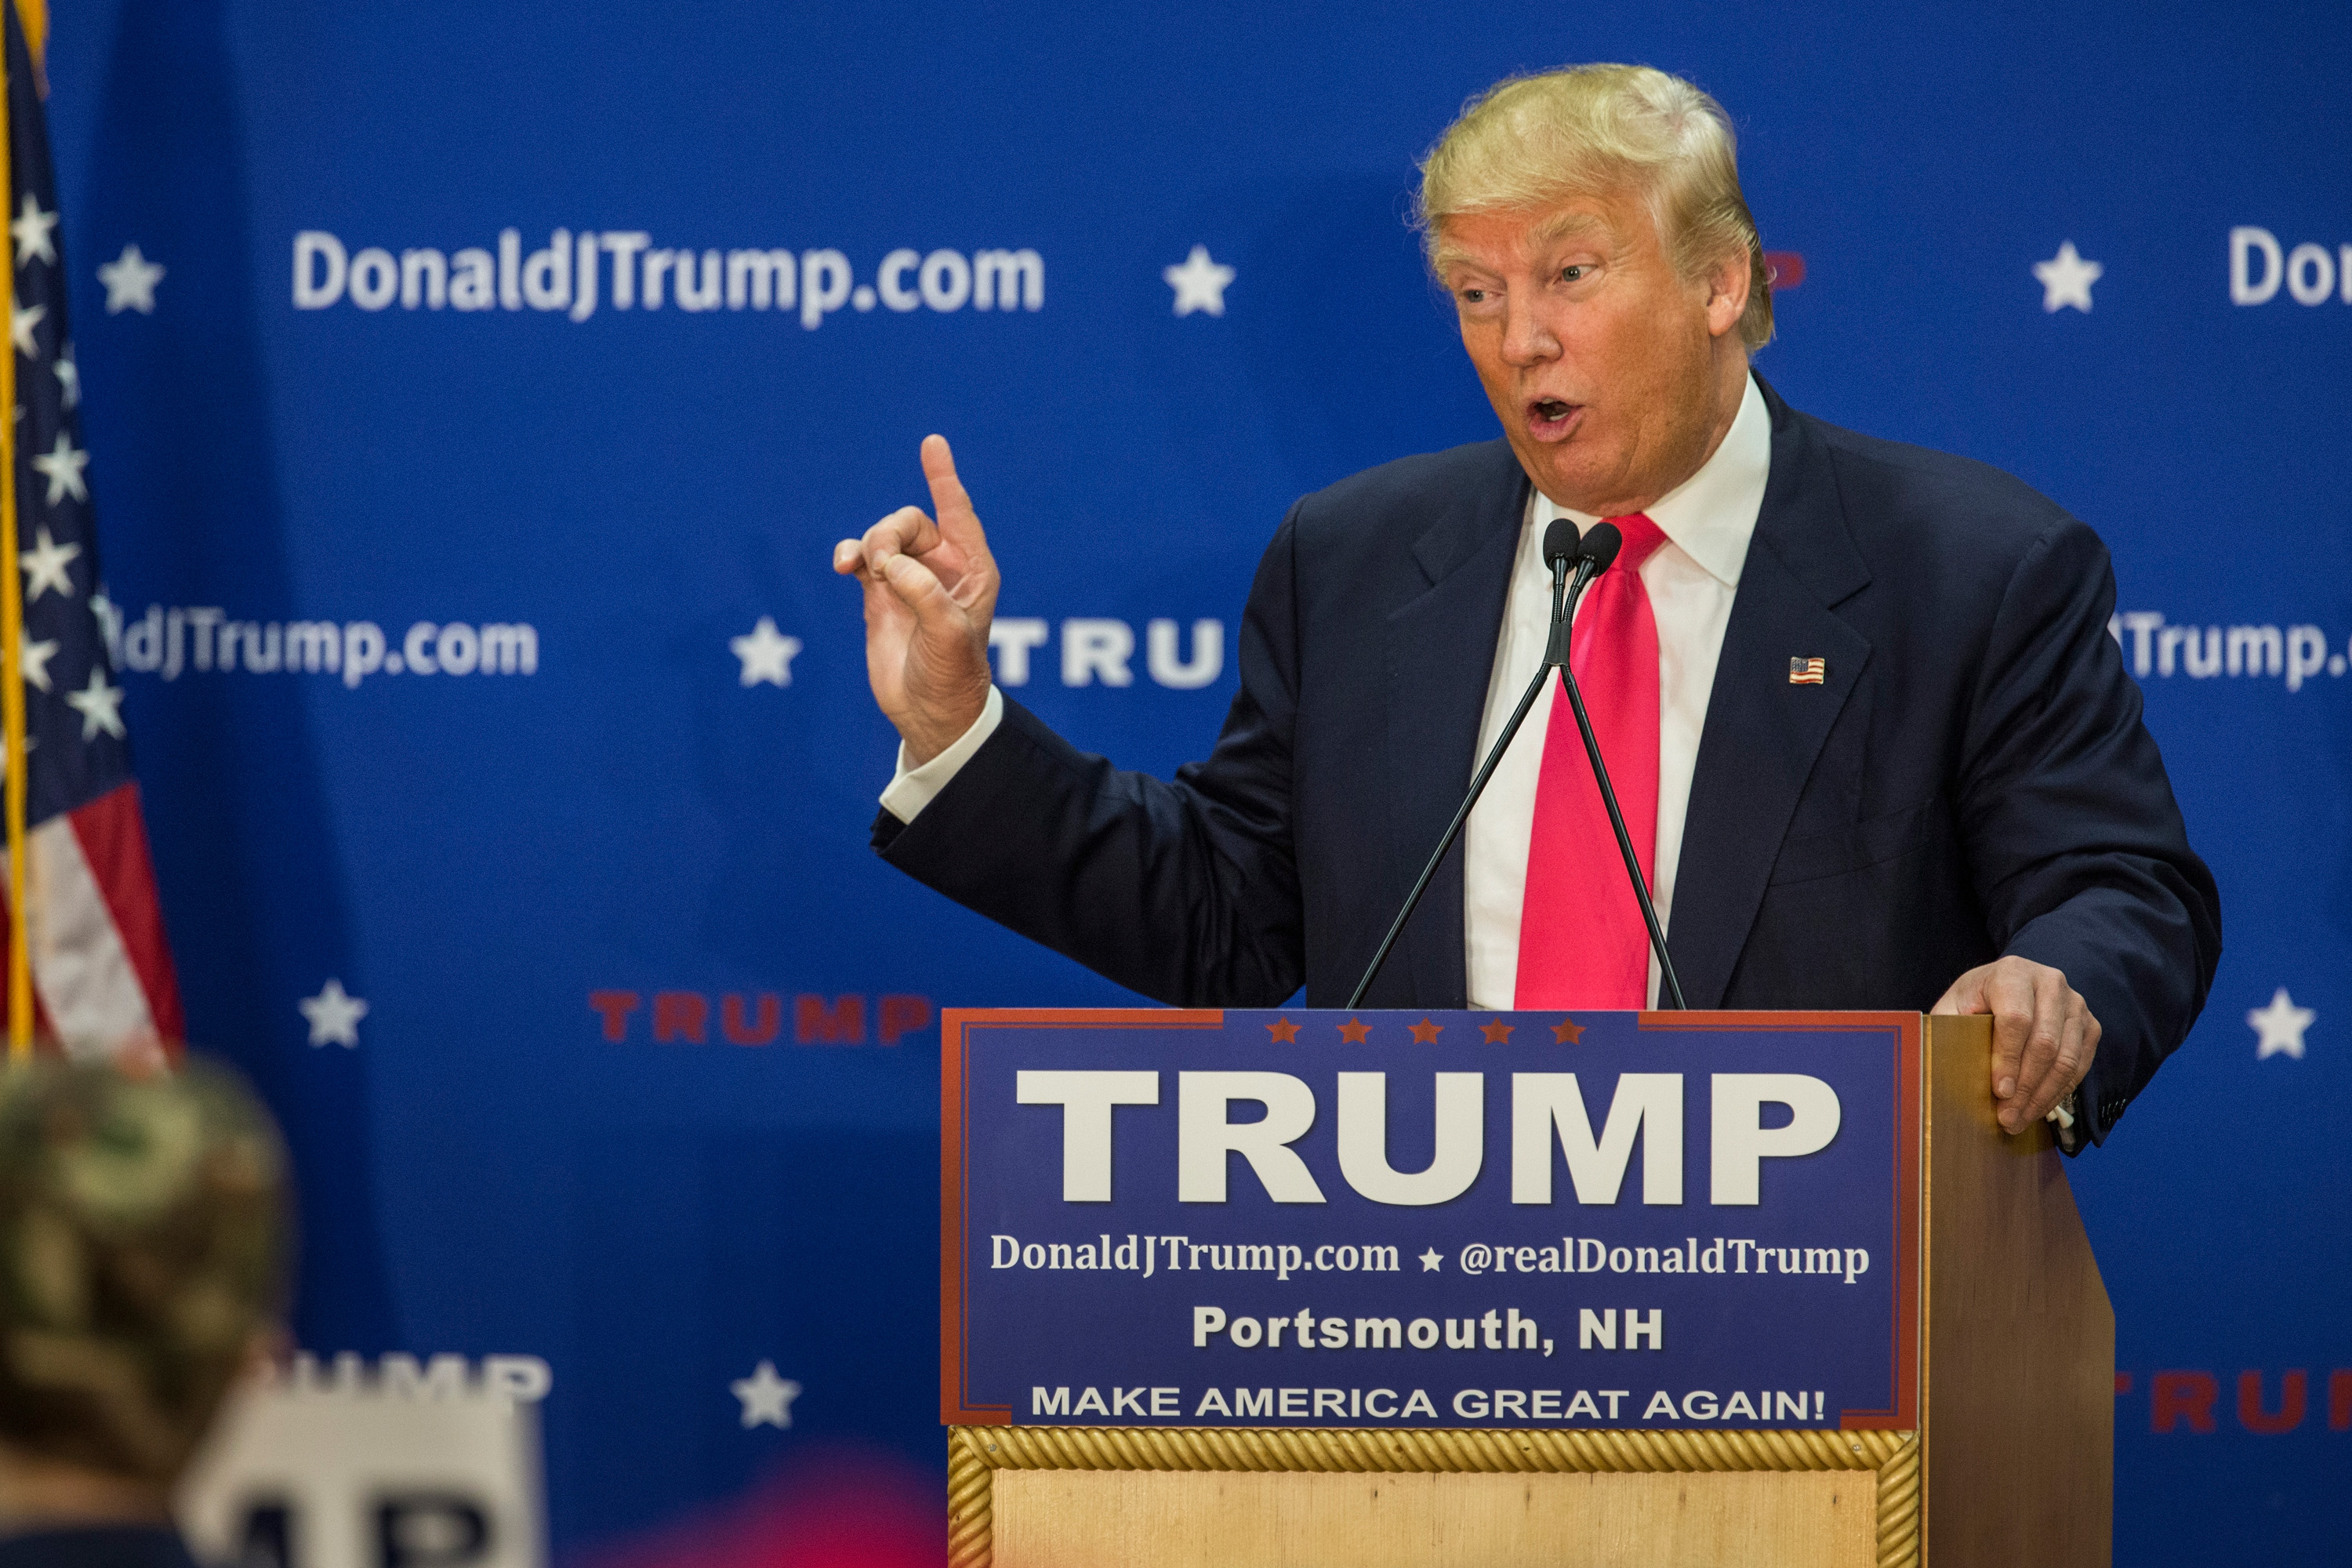 Donald Trump Campaigns In New Hampshire Ahead Of Primary